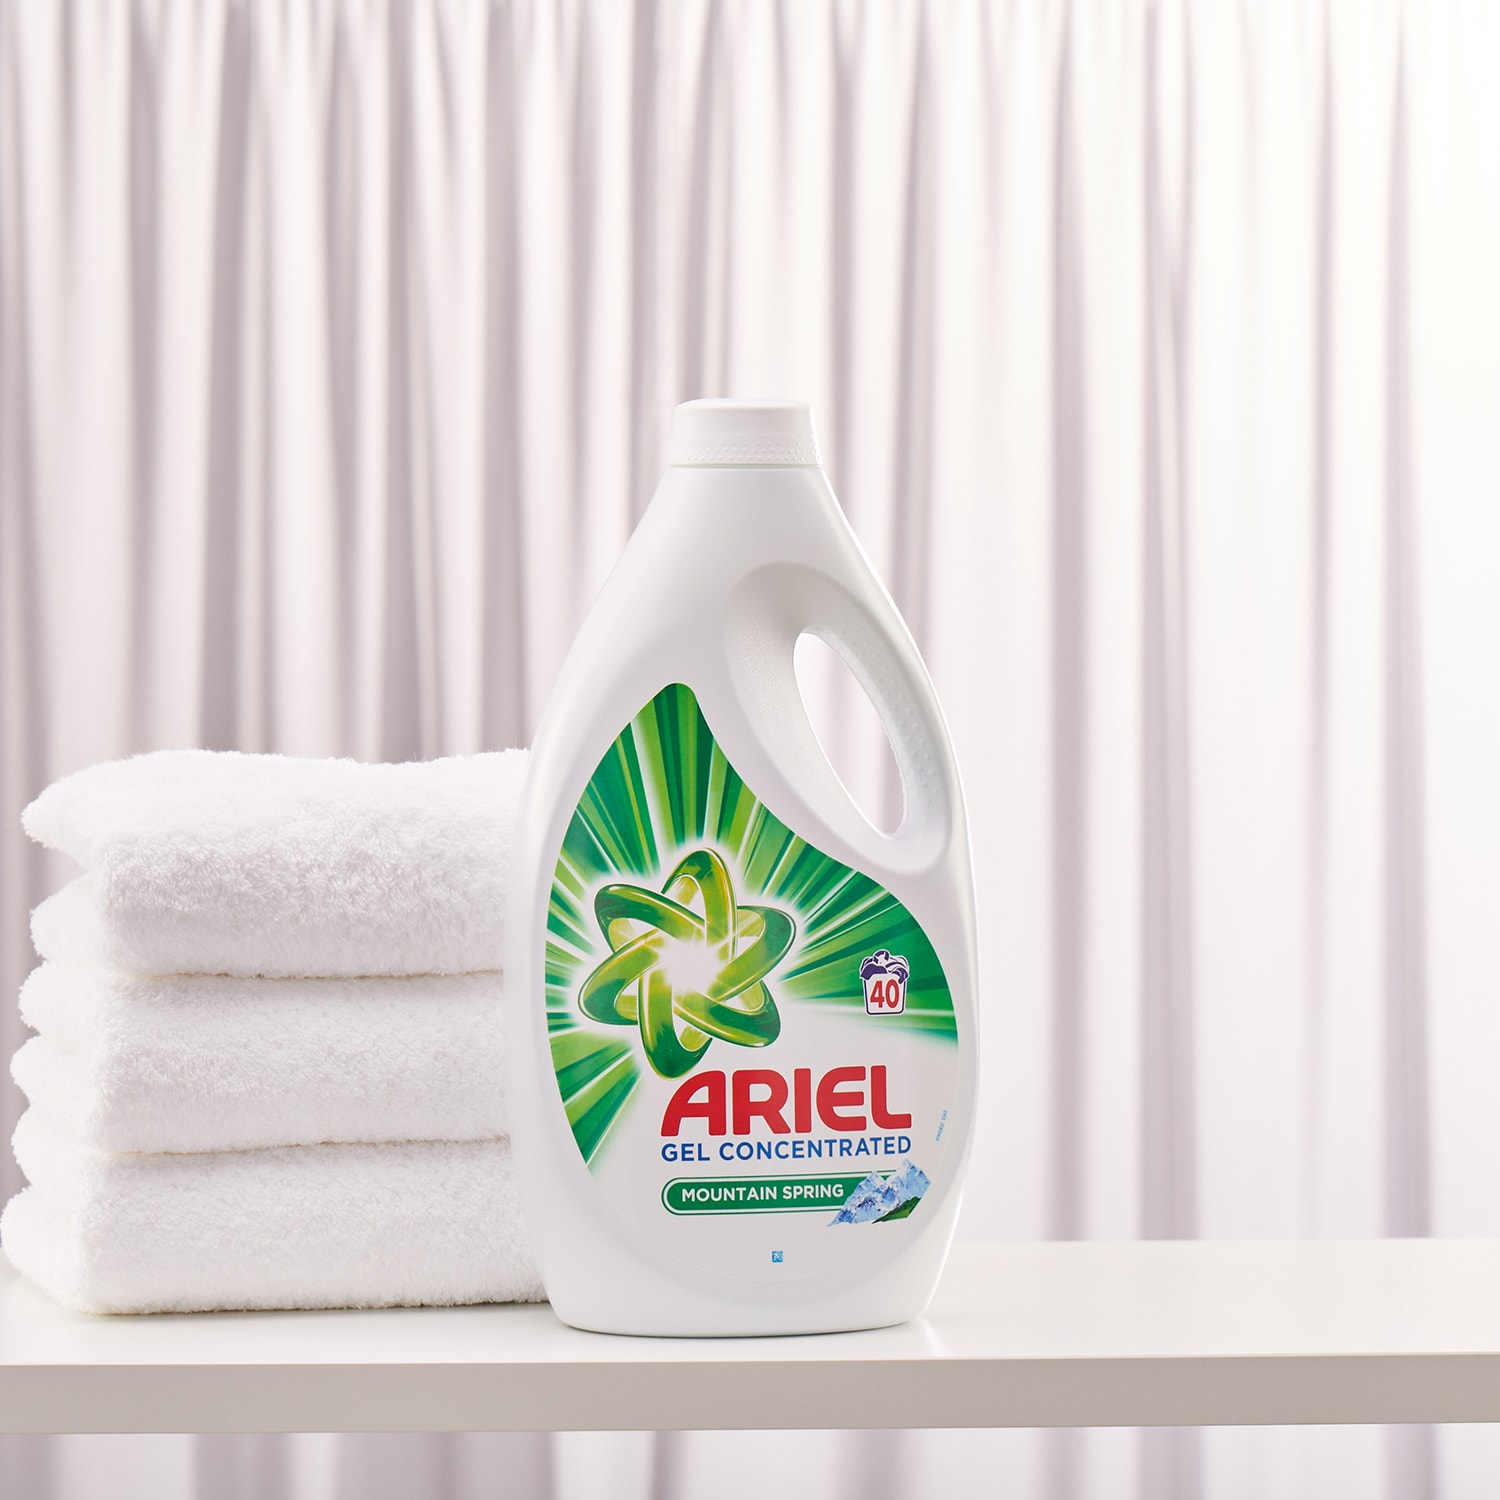 Ariel lichid mountain spring product photo